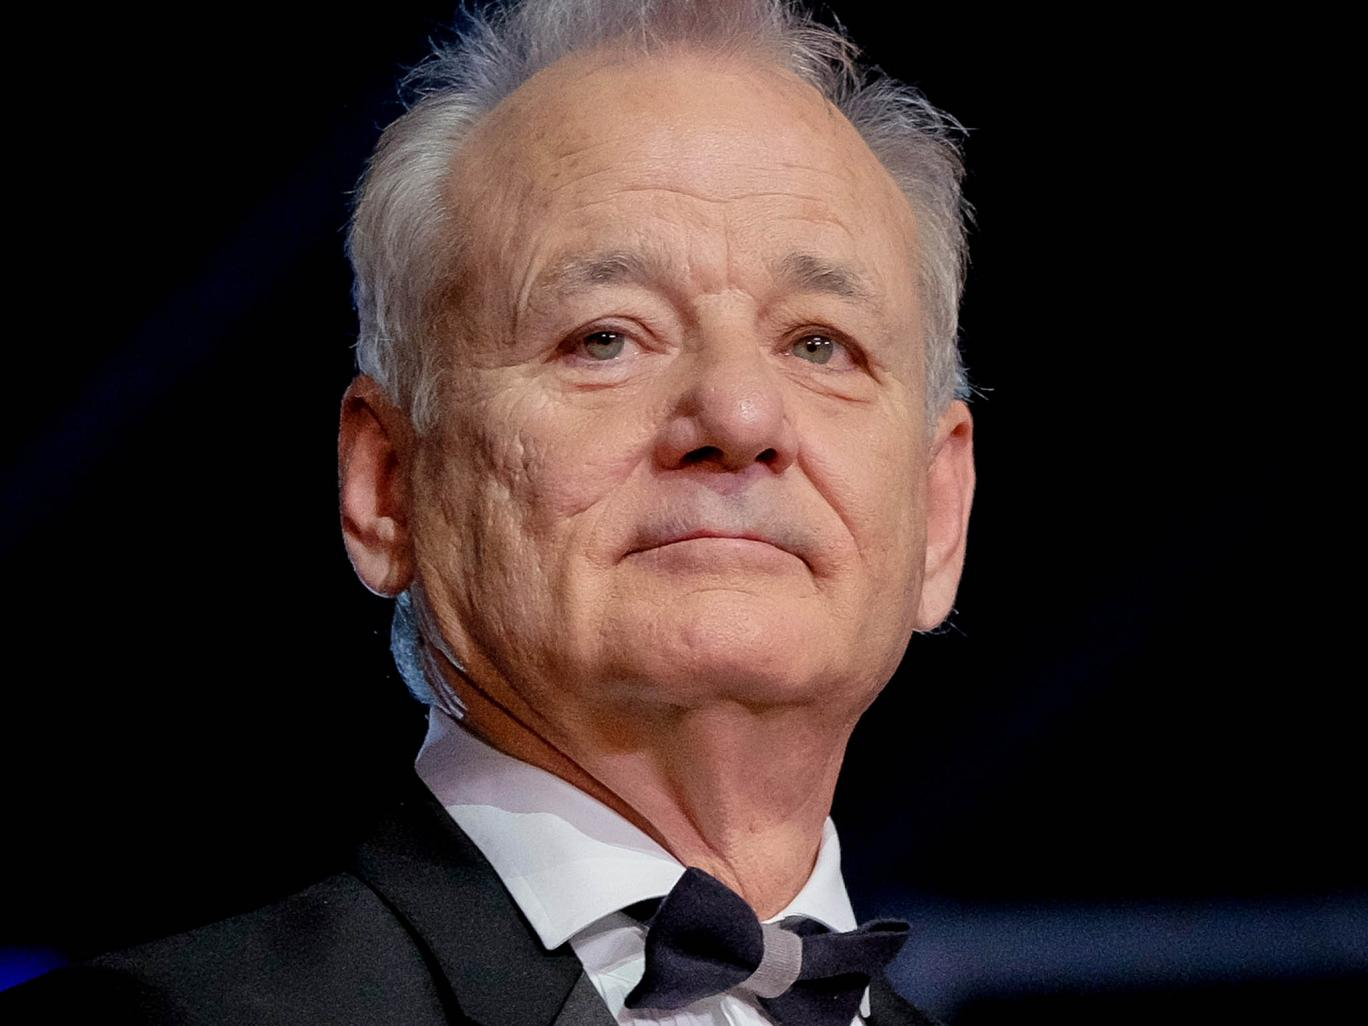 bill murray twitterbill murray movies, bill murray films, bill murray groundhog day, bill murray james belushi, bill murray phantogram, bill murray movies list, bill murray art, bill murray dead, bill murray gif, bill murray twitter, bill murray quotes, bill murray 2017, bill murray wiki, bill murray son, bill murray imdb, bill murray steals french fries, bill murray wu tang, bill murray and tom hanks, bill murray elephant, bill murray interview